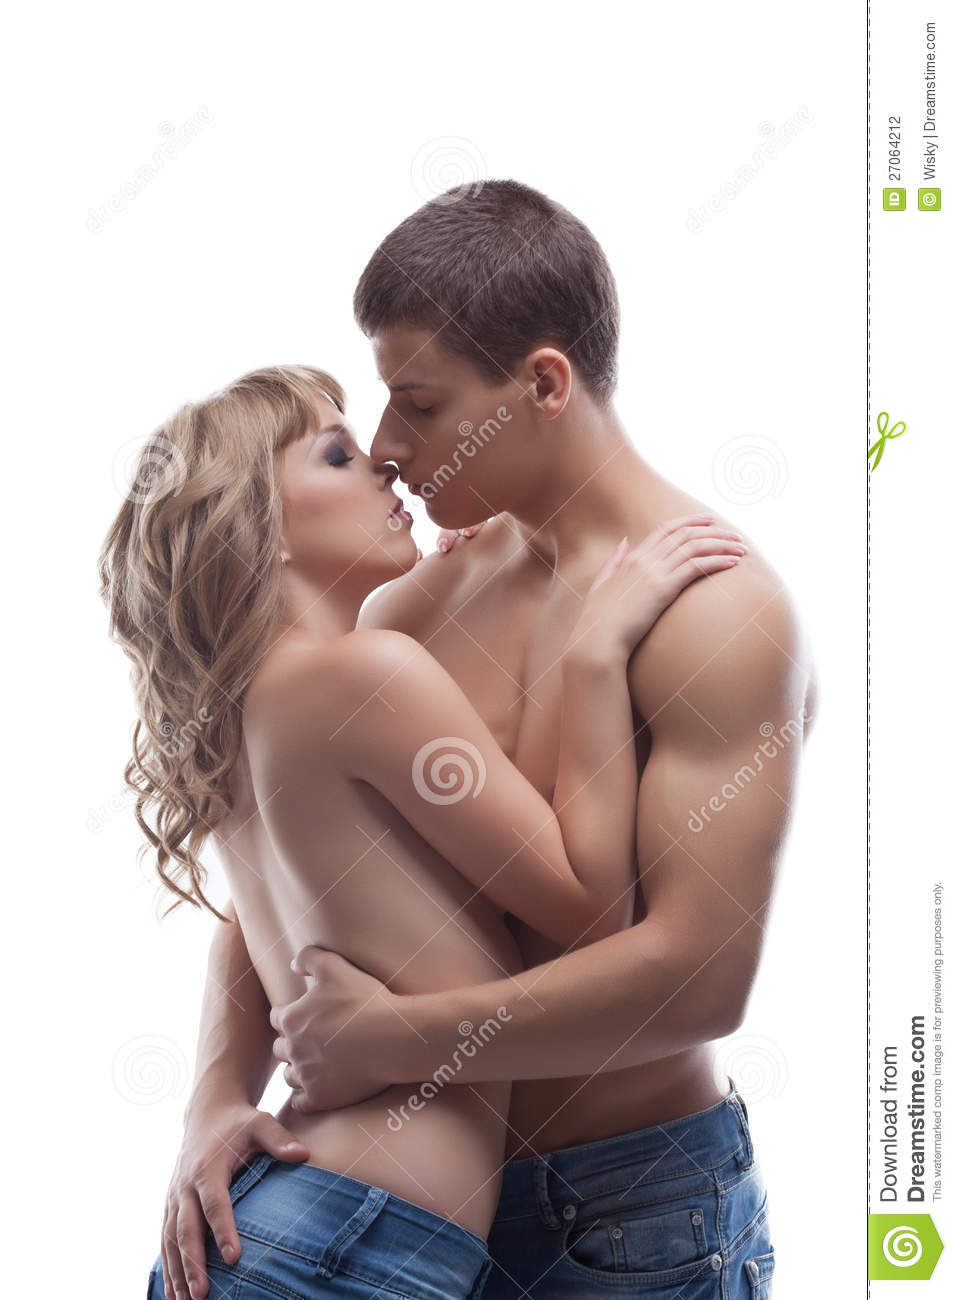 Sexy Girls Kissing Boys Naked